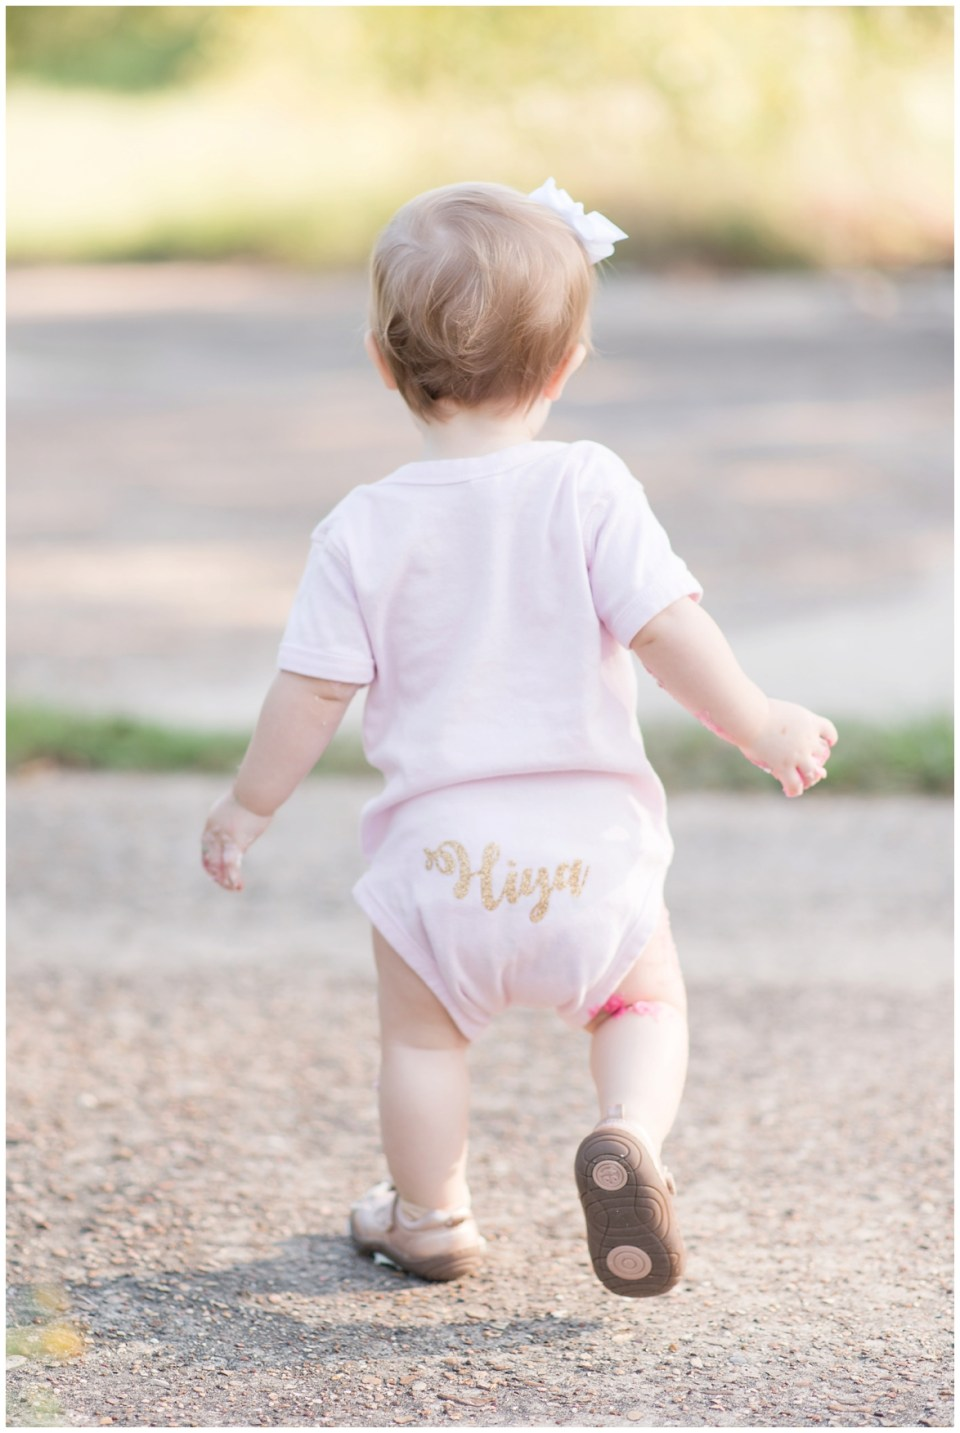 Kingwood photographer mini session with adorable 1 year old in polka dot tutu for cake smash